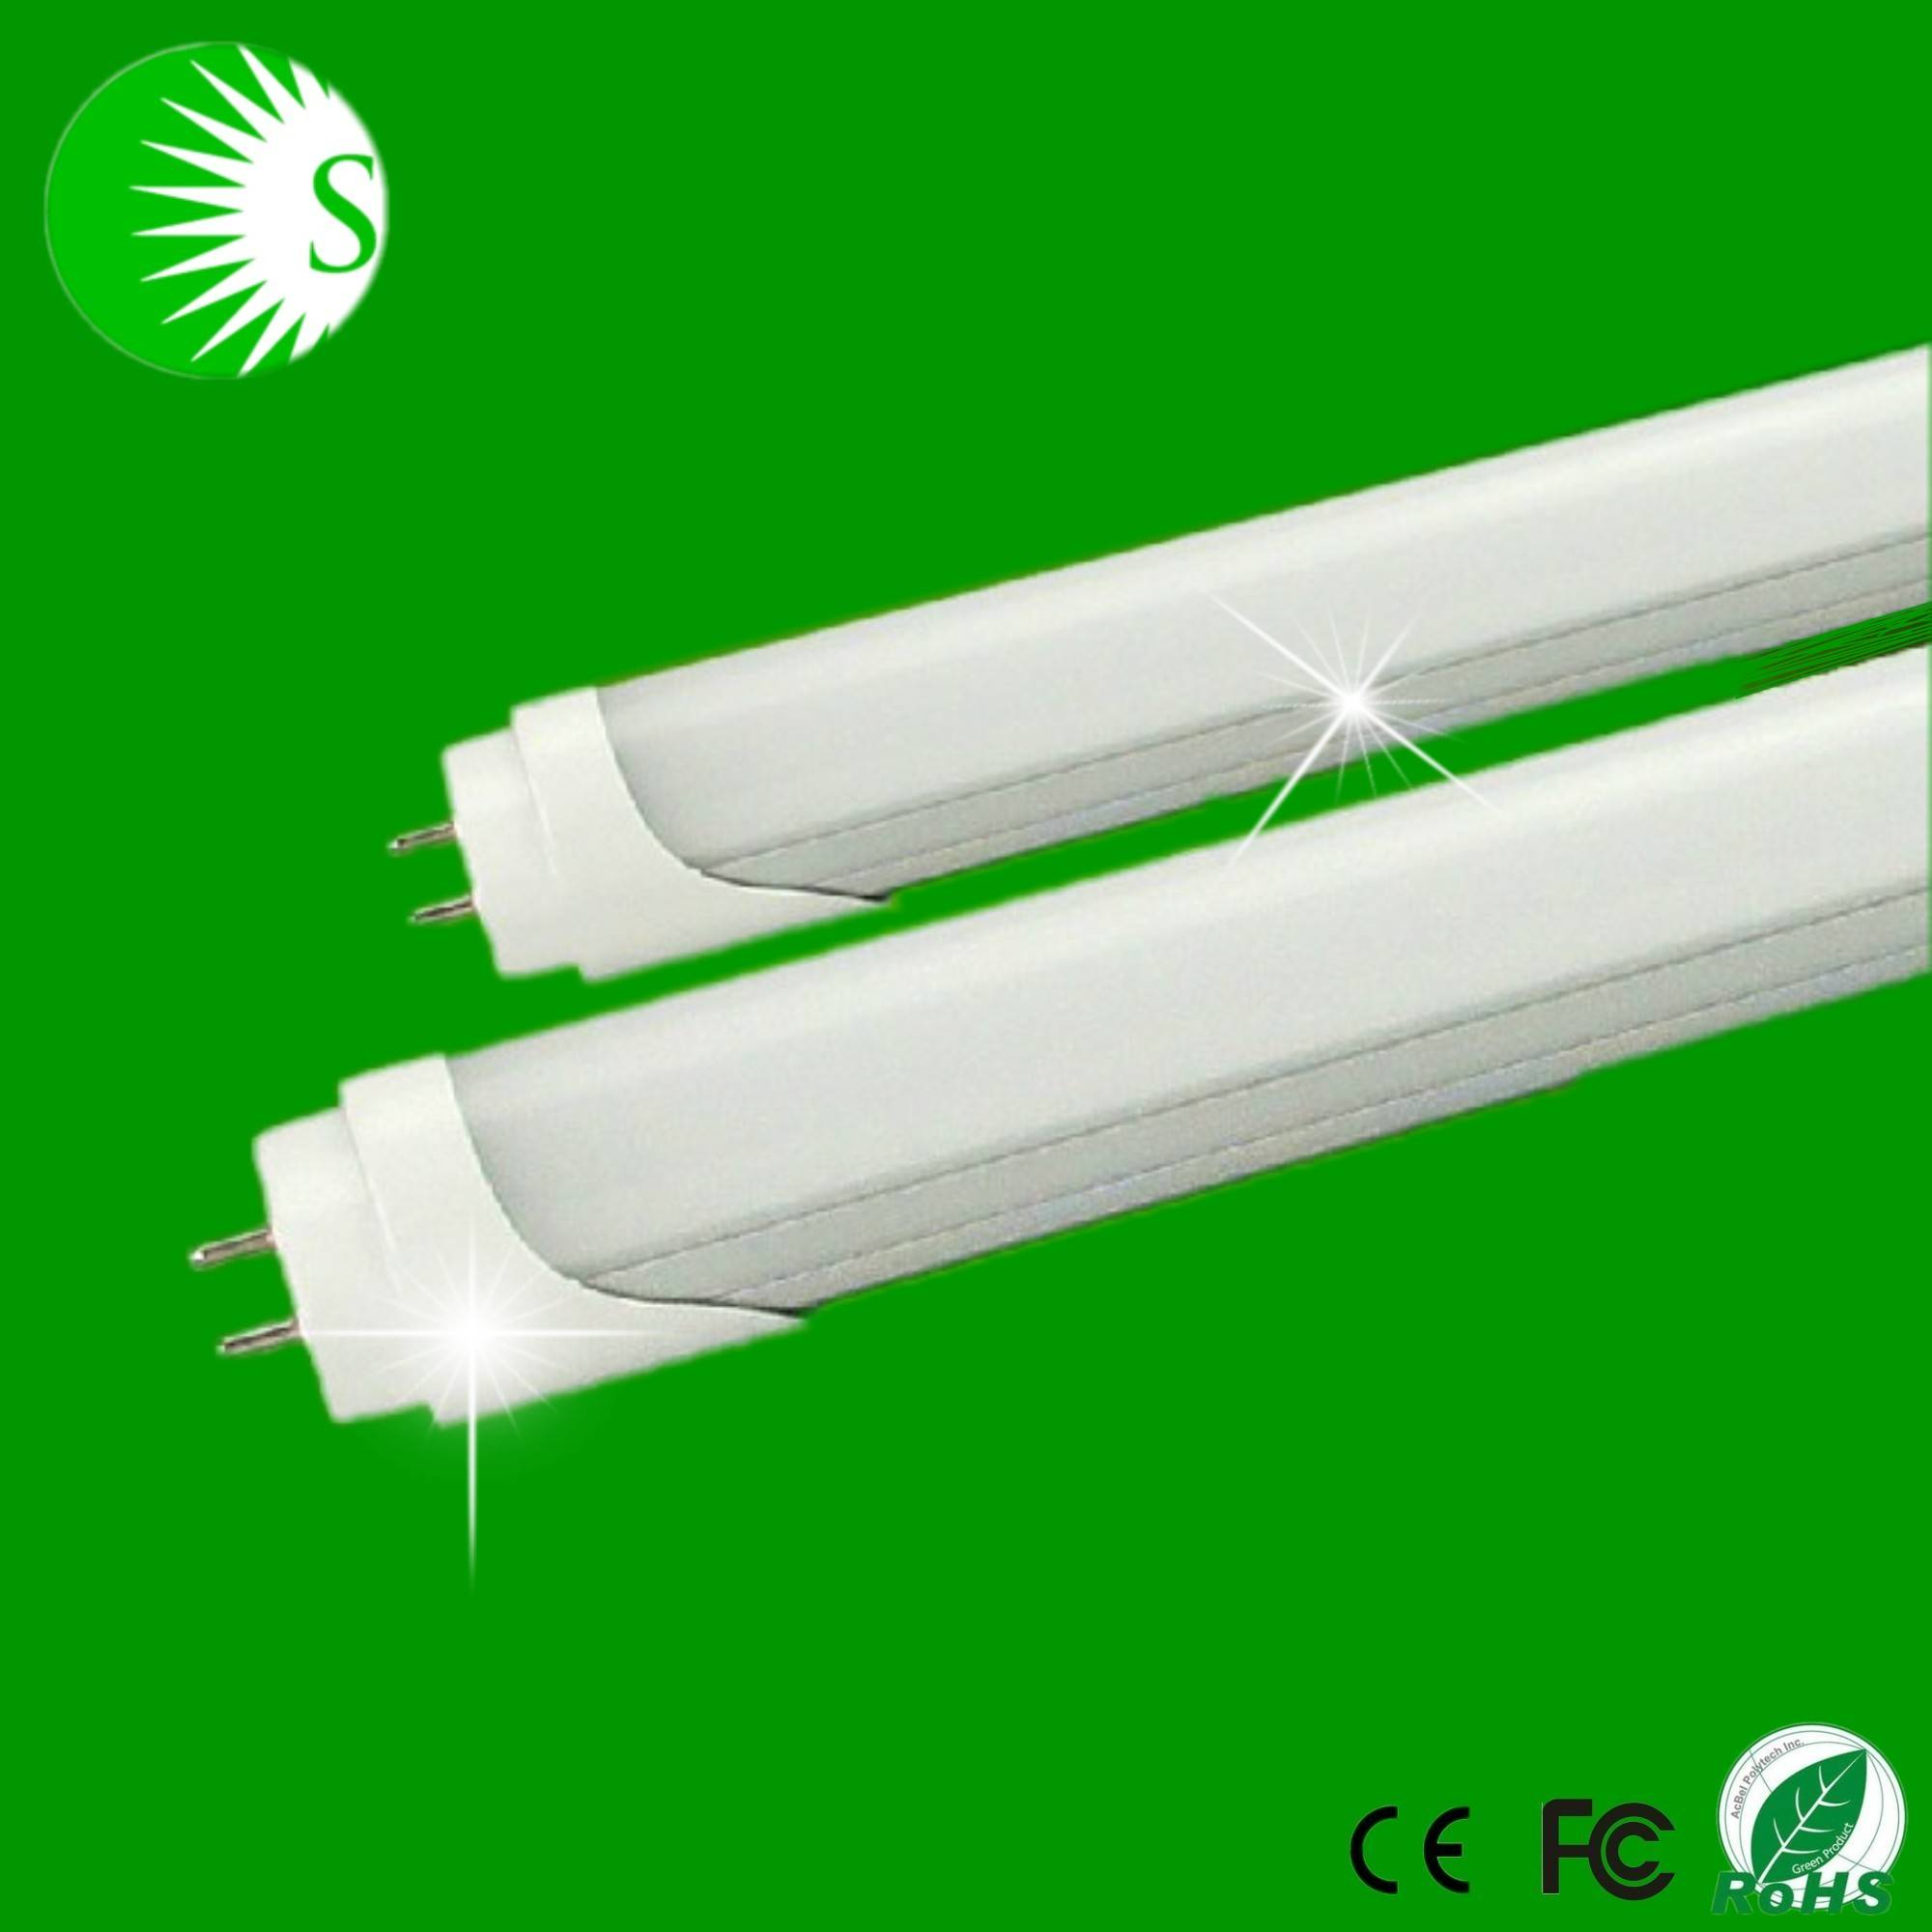 4w 6w 9w 12w 18w 0.6m 0.9m 1.2m Epistar 2835 led chip light wide voltage 85-265v guangzhou led tube